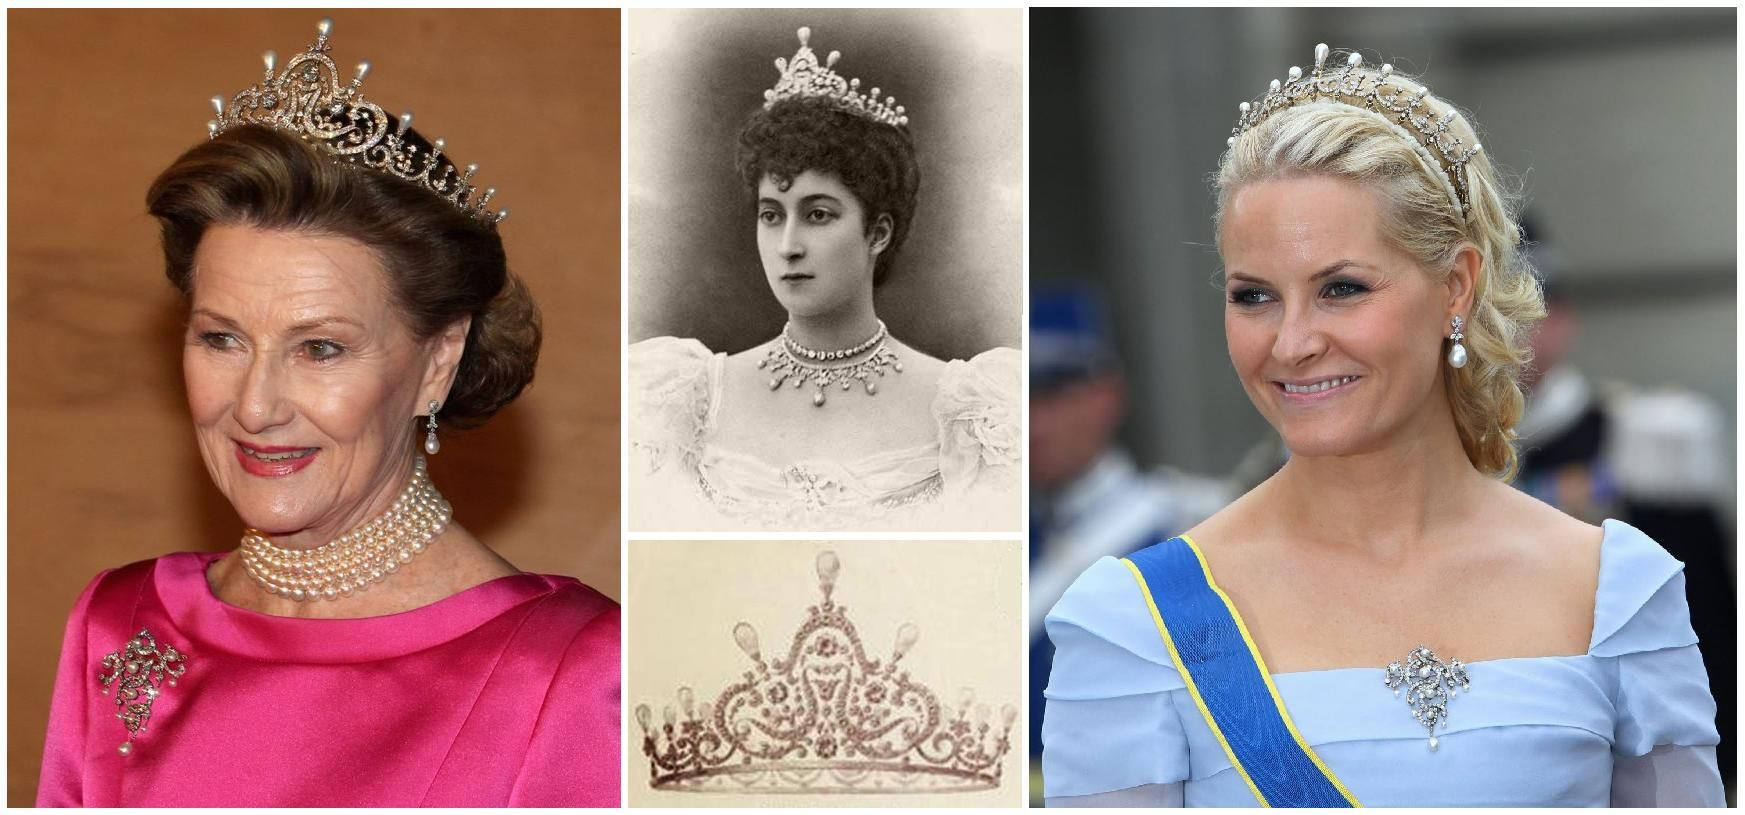 Queen Maud's Pearl and Diamond Tiara. Given to her by her parents when she married Carl of Denmark in 1896 (the future K Haakon VII of the newly independent Norway). Designed with diamond scroll and festoon motifs topped with pearls, it has a large detachable central element. In 1995, the piece was sent to Garrard in London to be cleaned and was stolen. It was never been recovered. Garrard made a replica for the family, and that´s the tiara that has been worn ever since